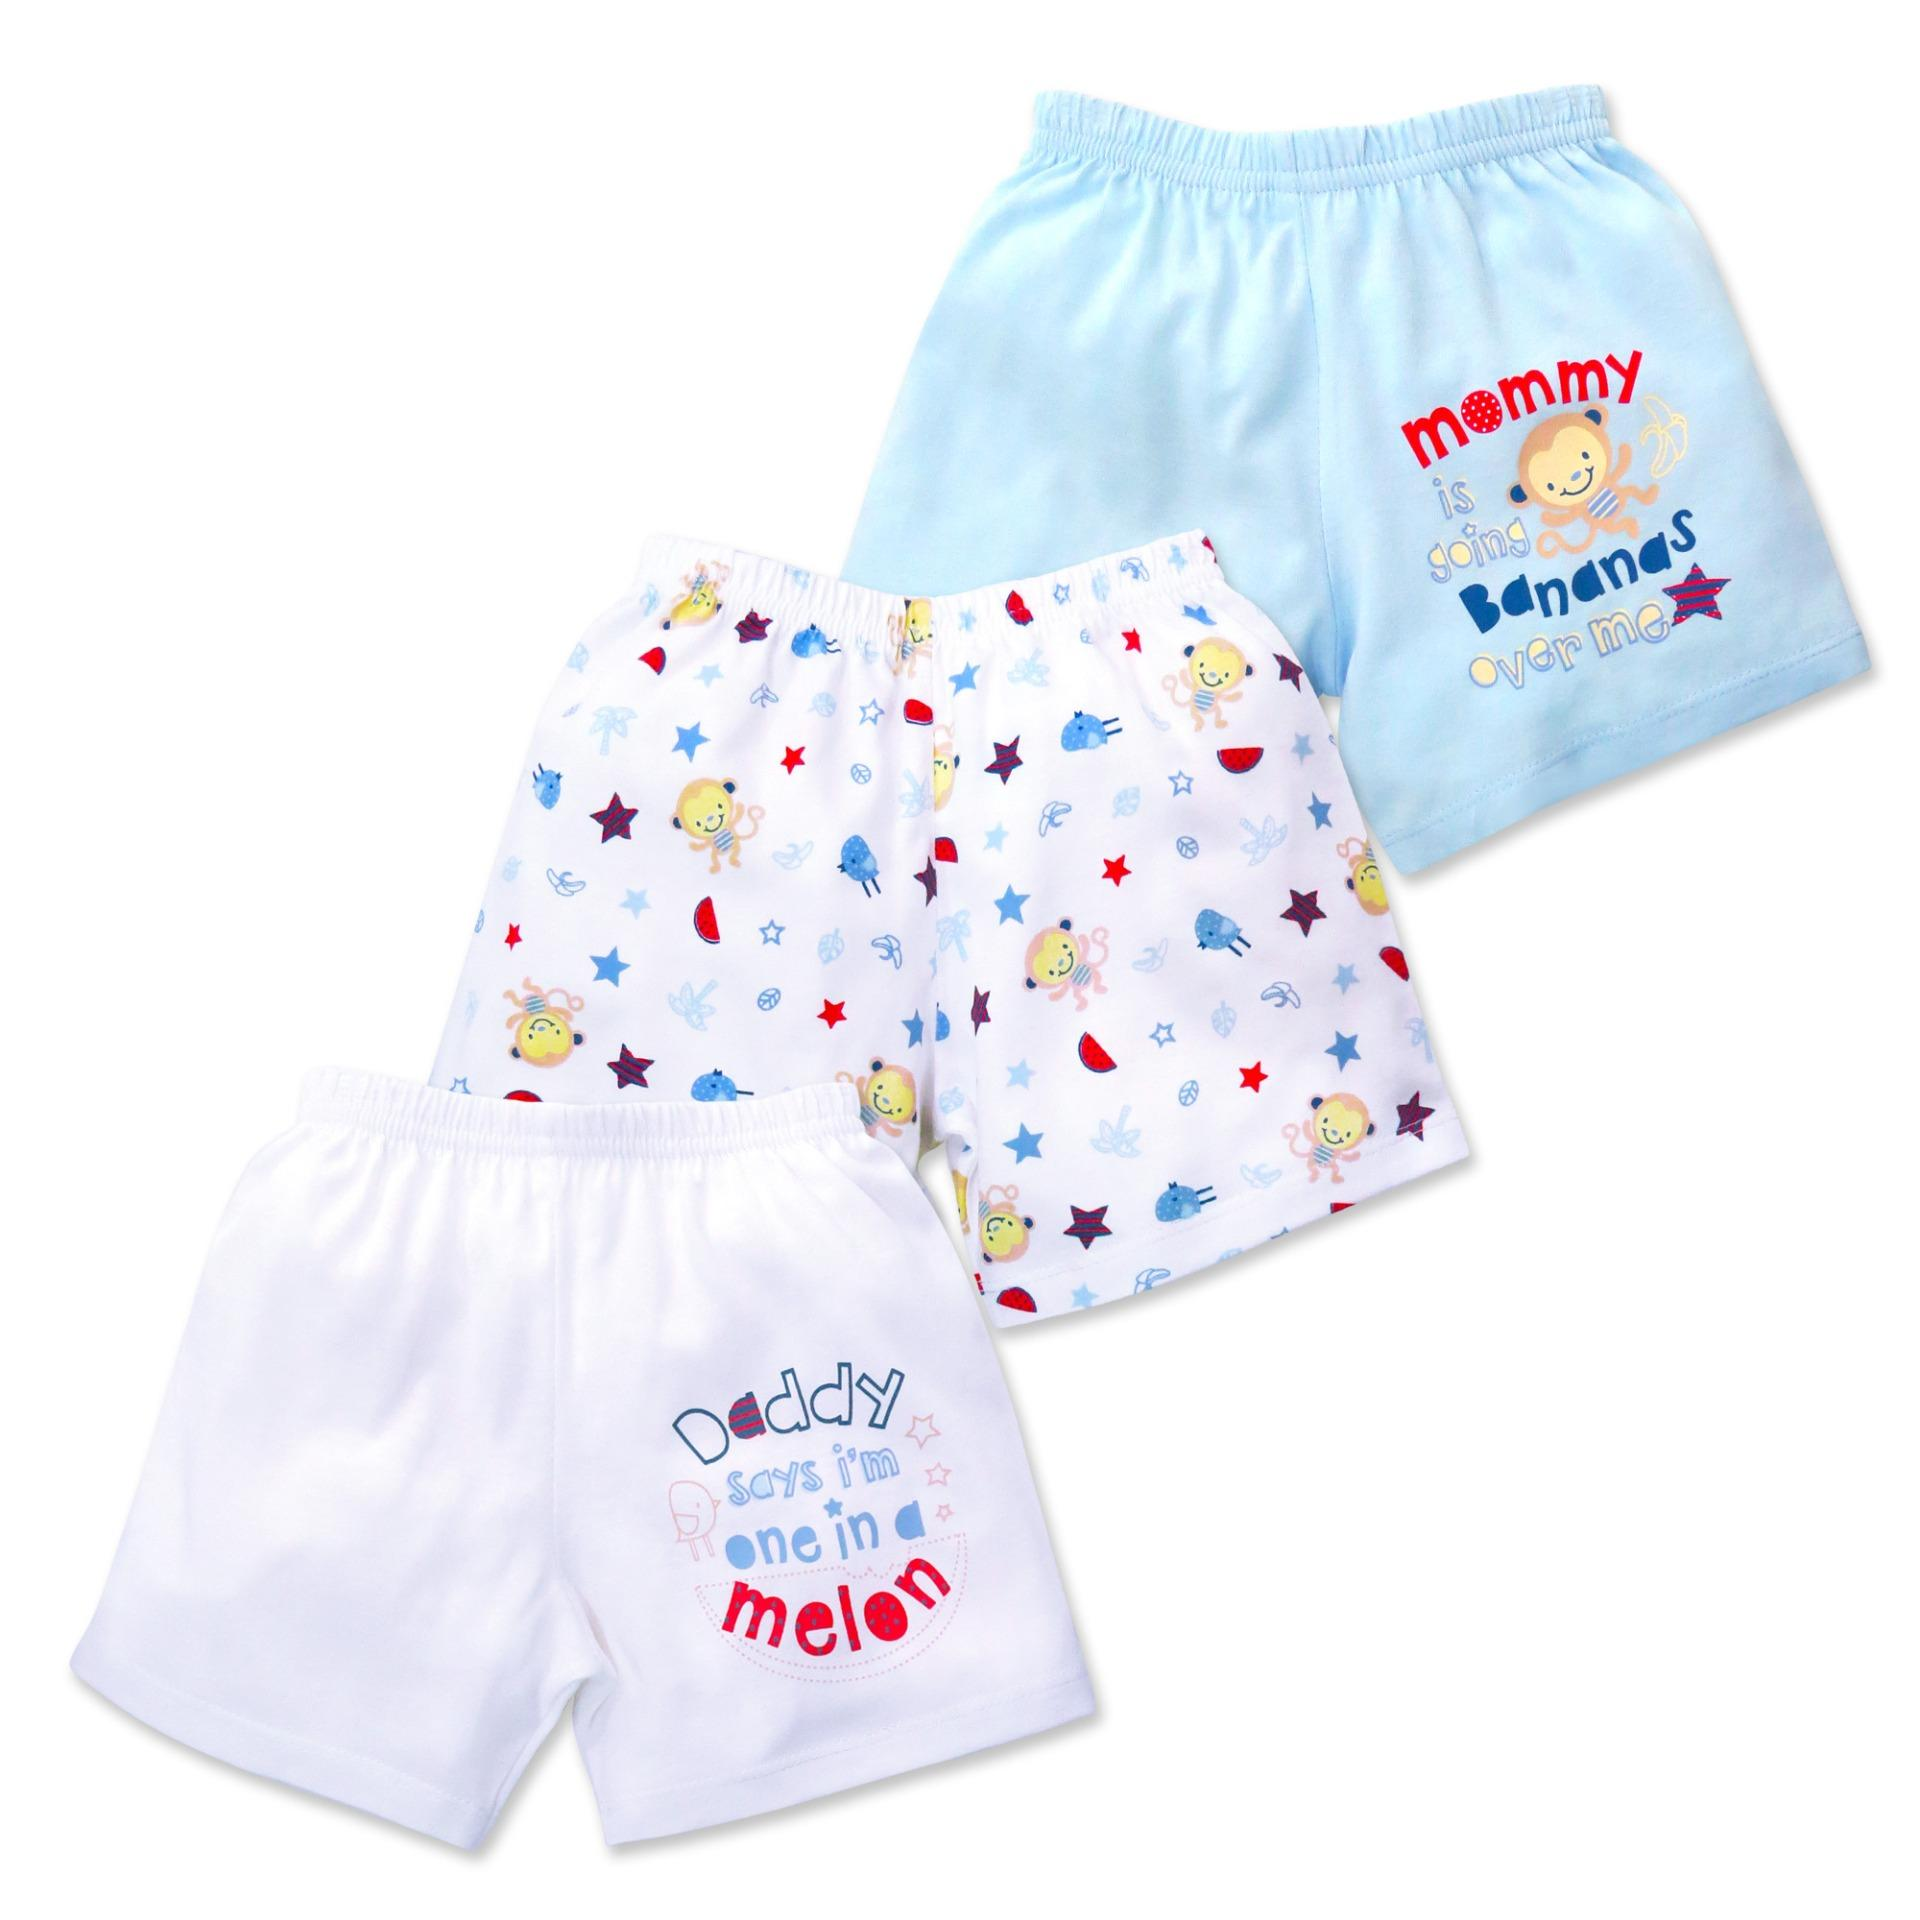 Boys Shorts for sale Baby Shorts for Boys online brands prices